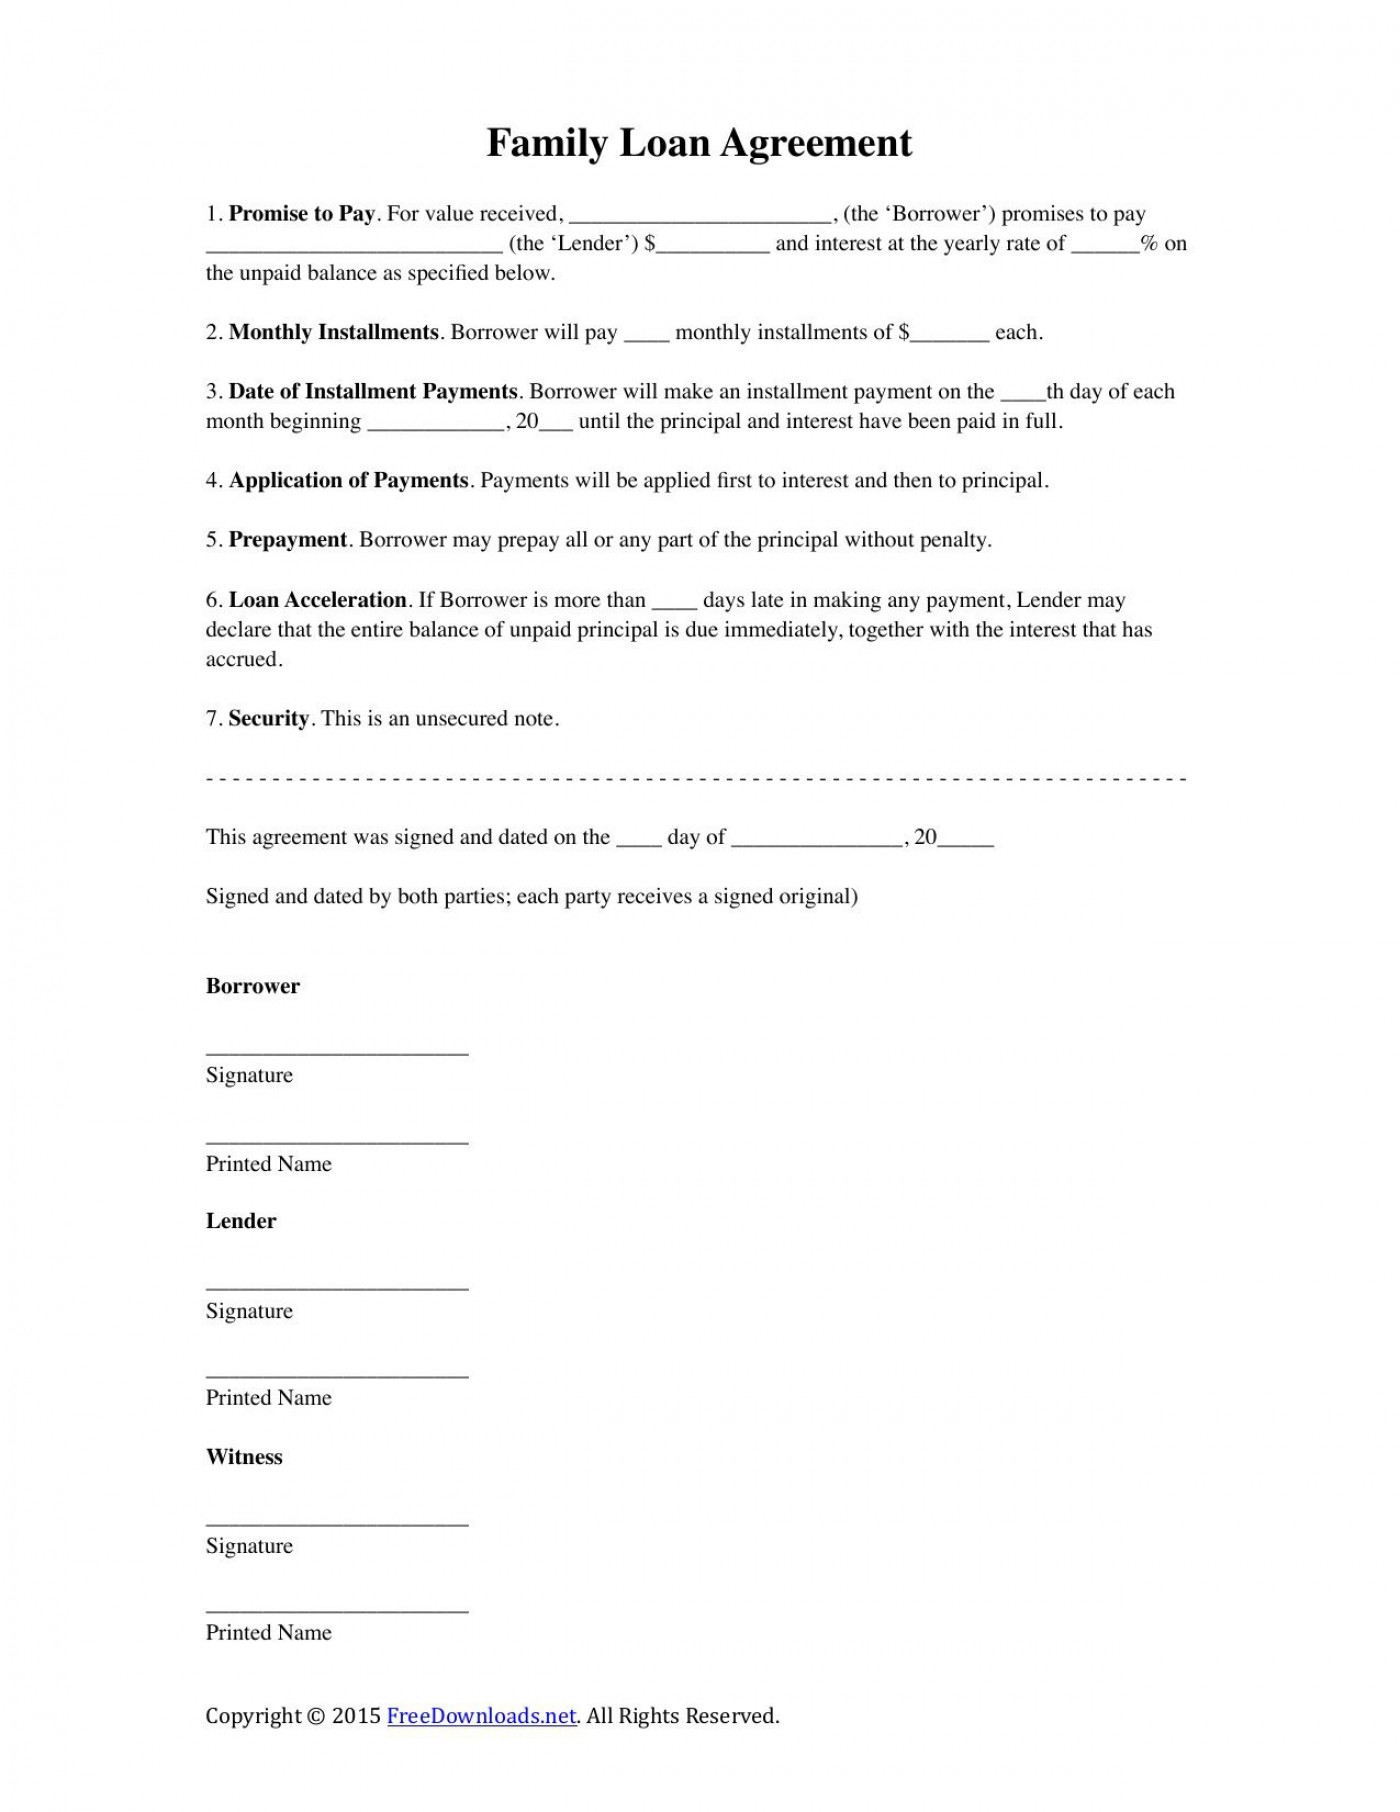 002 Stunning Family Loan Agreement Template Highest Clarity  Free Uk Friend And Simple Australia1400